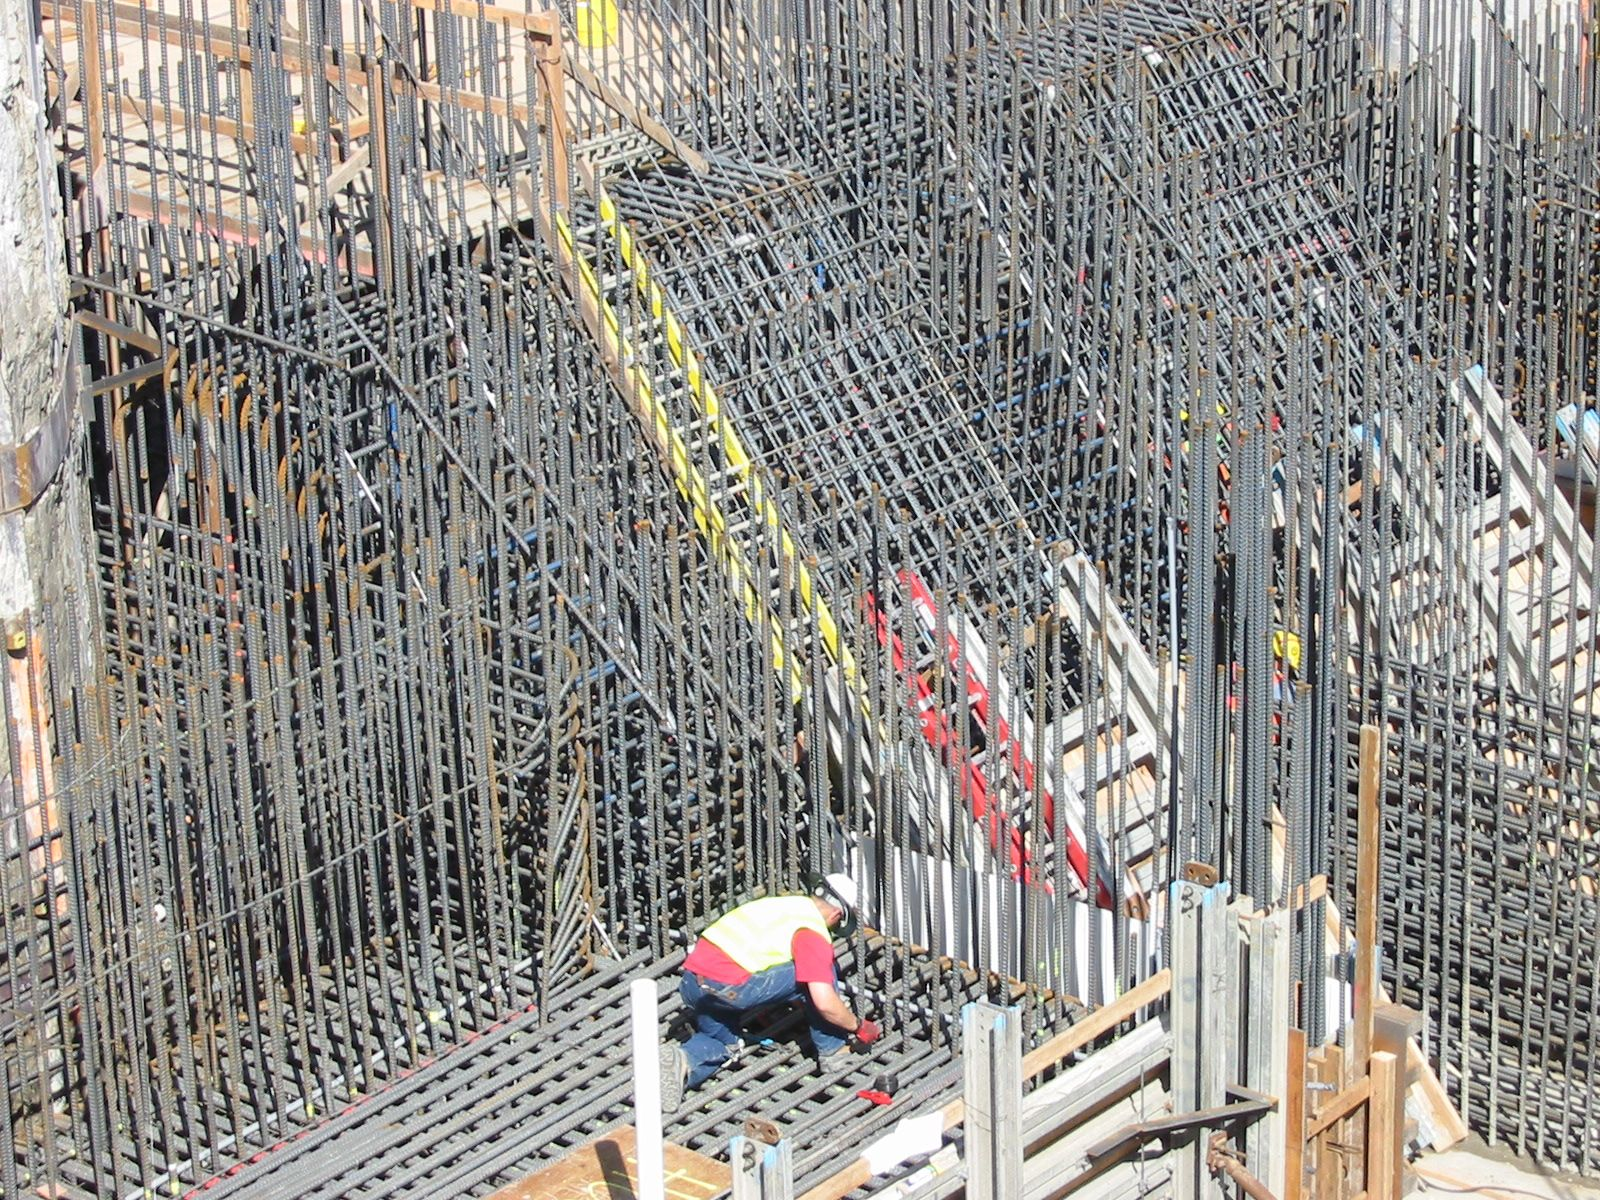 rebar for foundations and walls of a sewage pump station